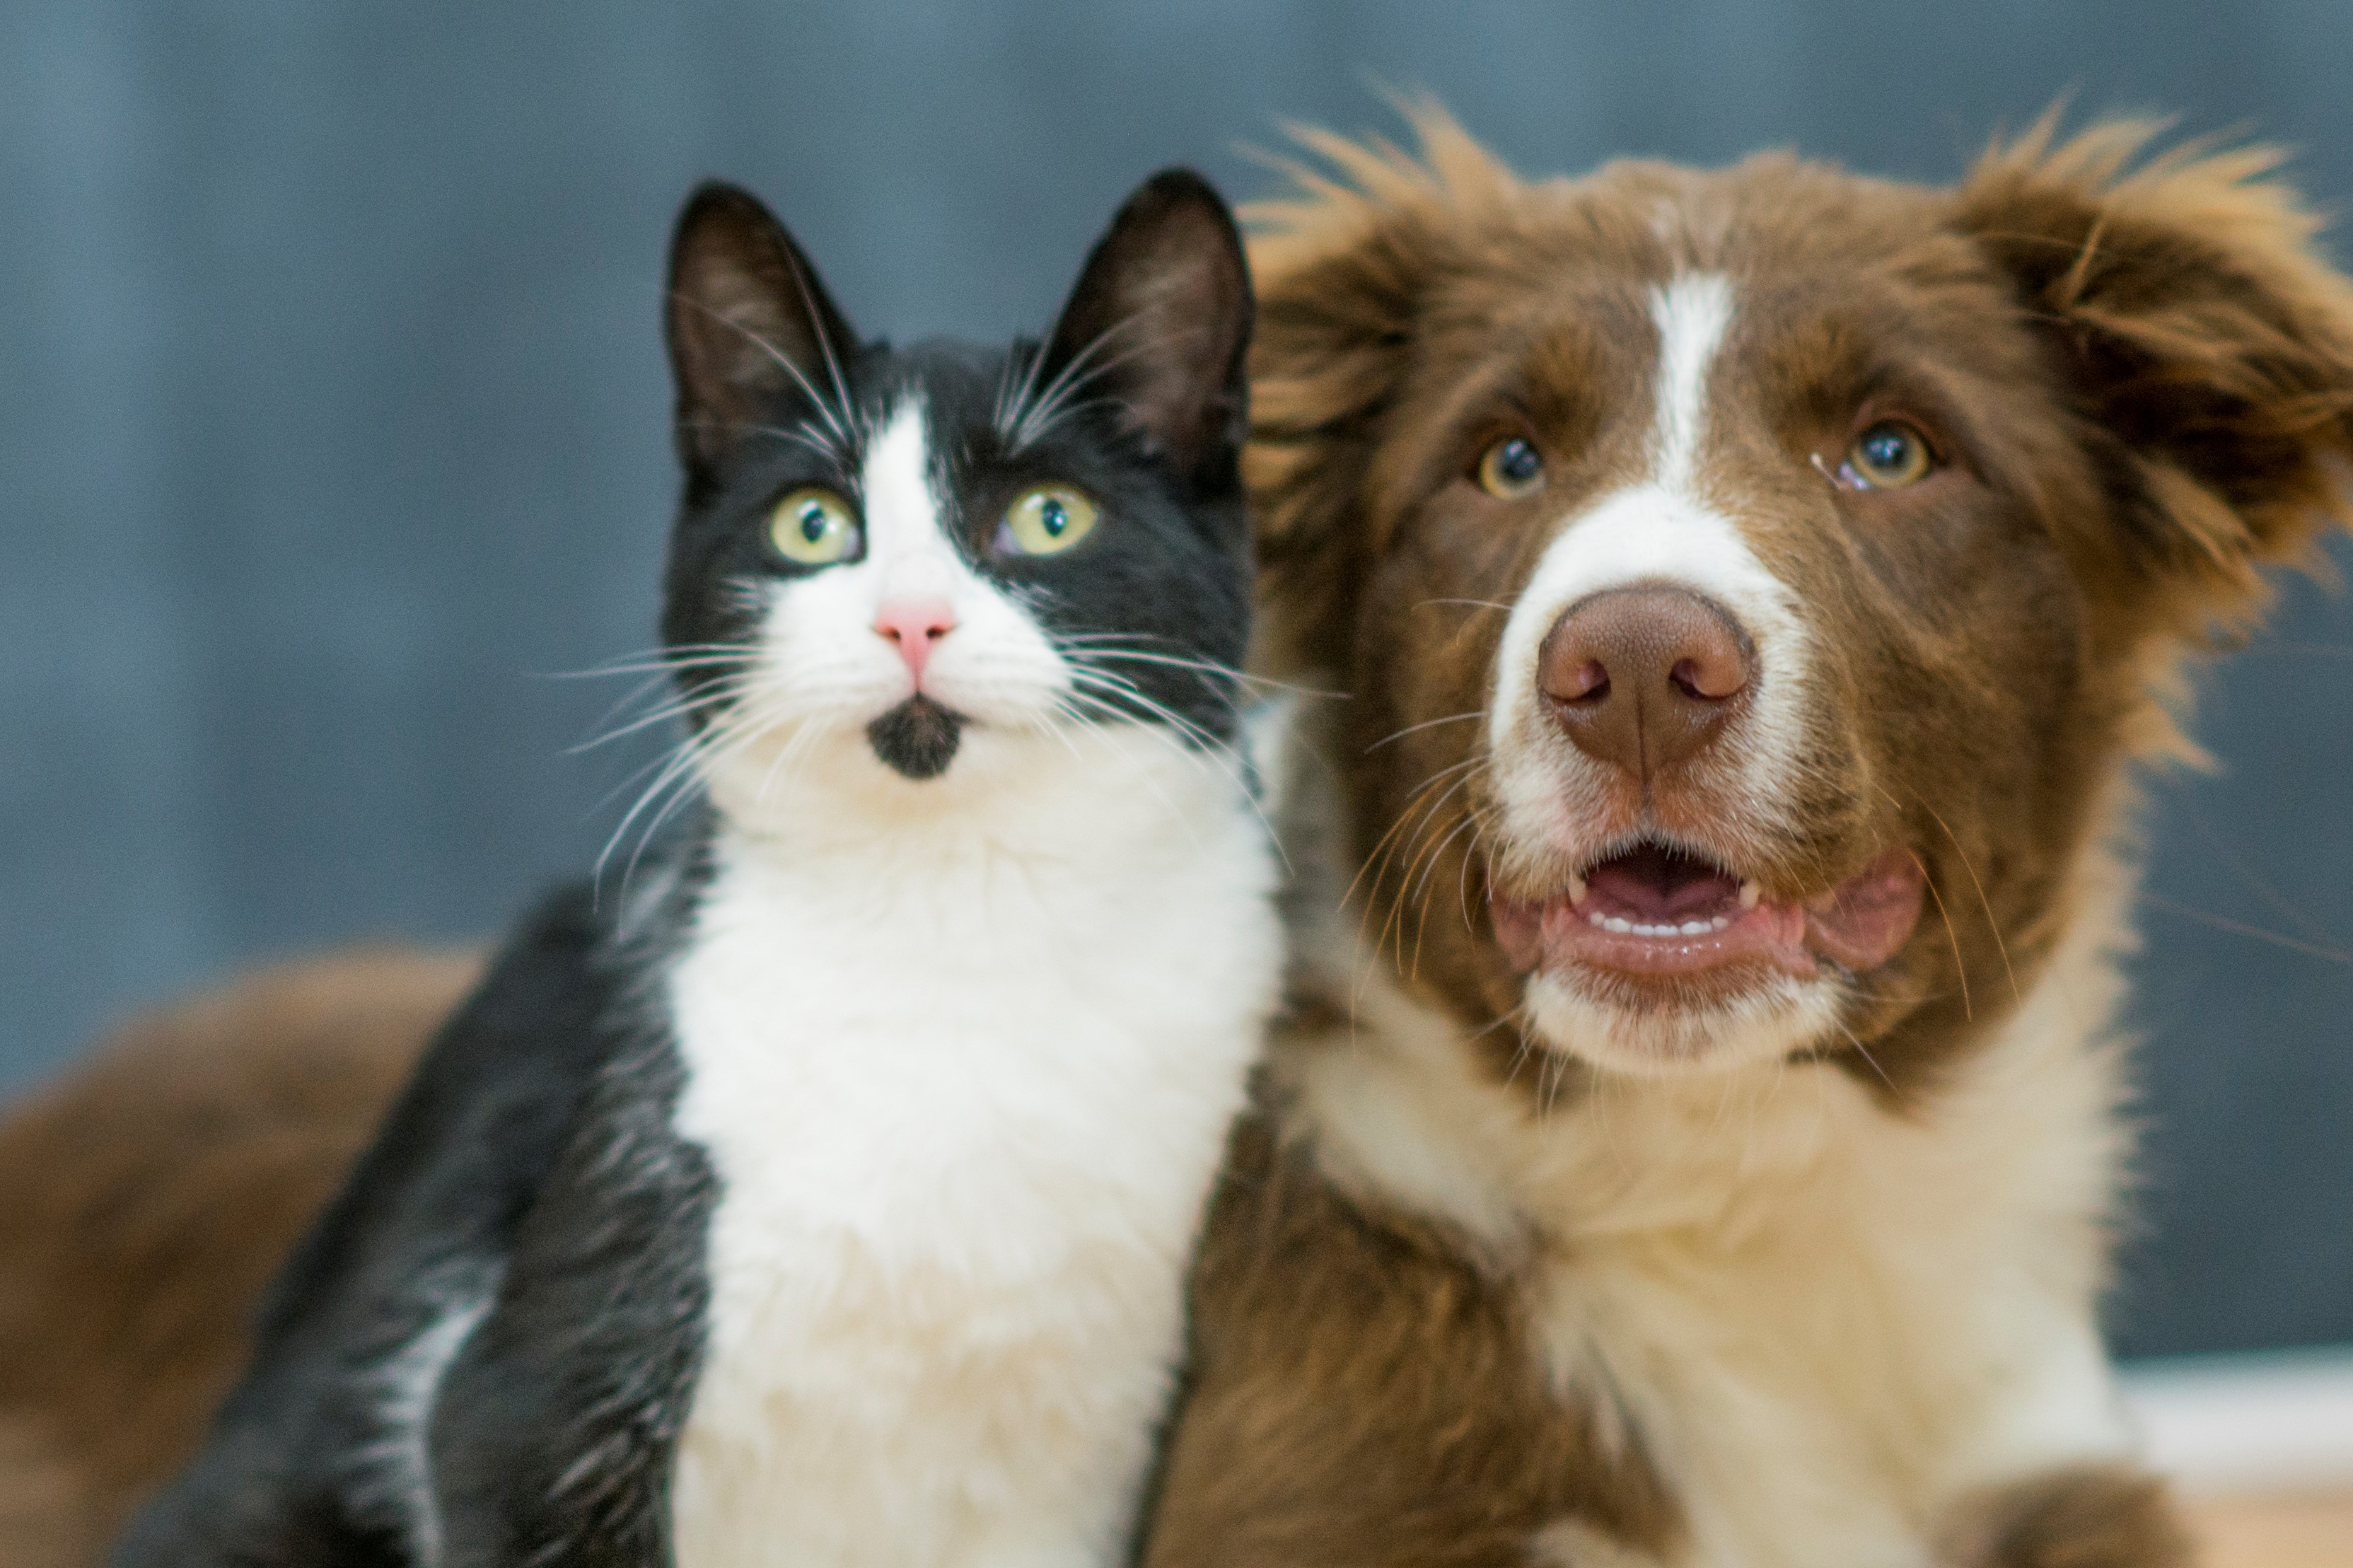 Crypto Innovators' Purr-fect Solutions Could End Animal Cruelty